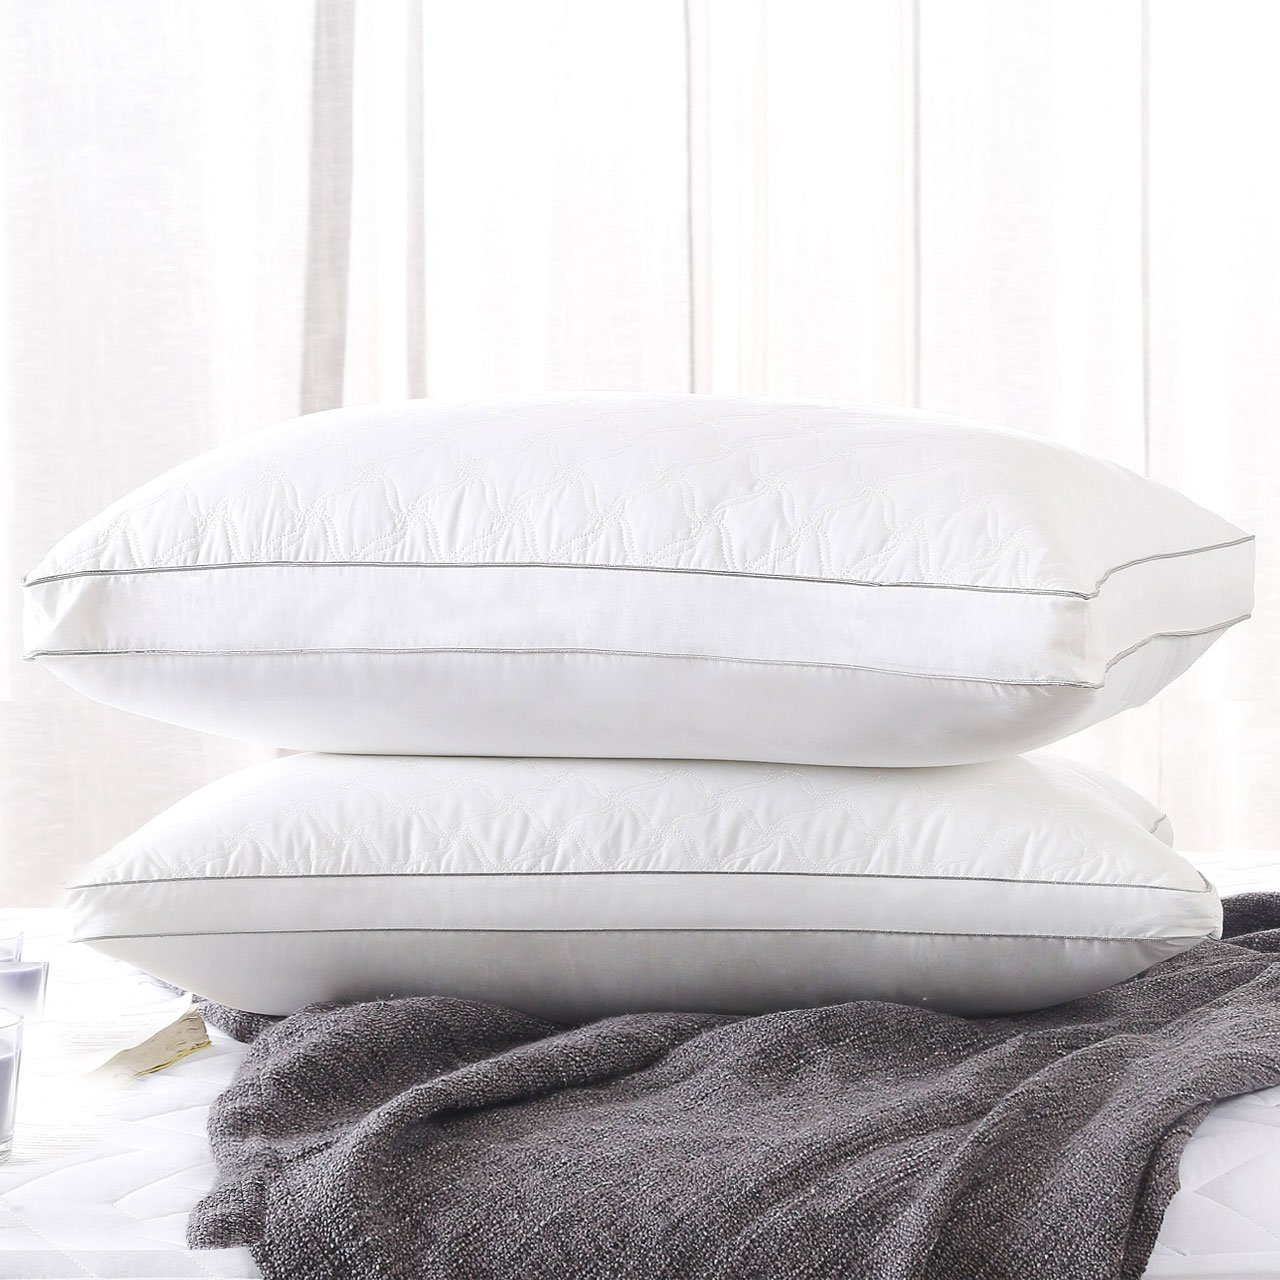 Fancy Collection 1 Pc Queen Size Soft Bed Pillows for Sleeping, Hypoallergenic Bedding Pillow, Anti-Mite Silk Cotton and Feather Velvet for Breathable and Softer Sleeping New Fancy Linen